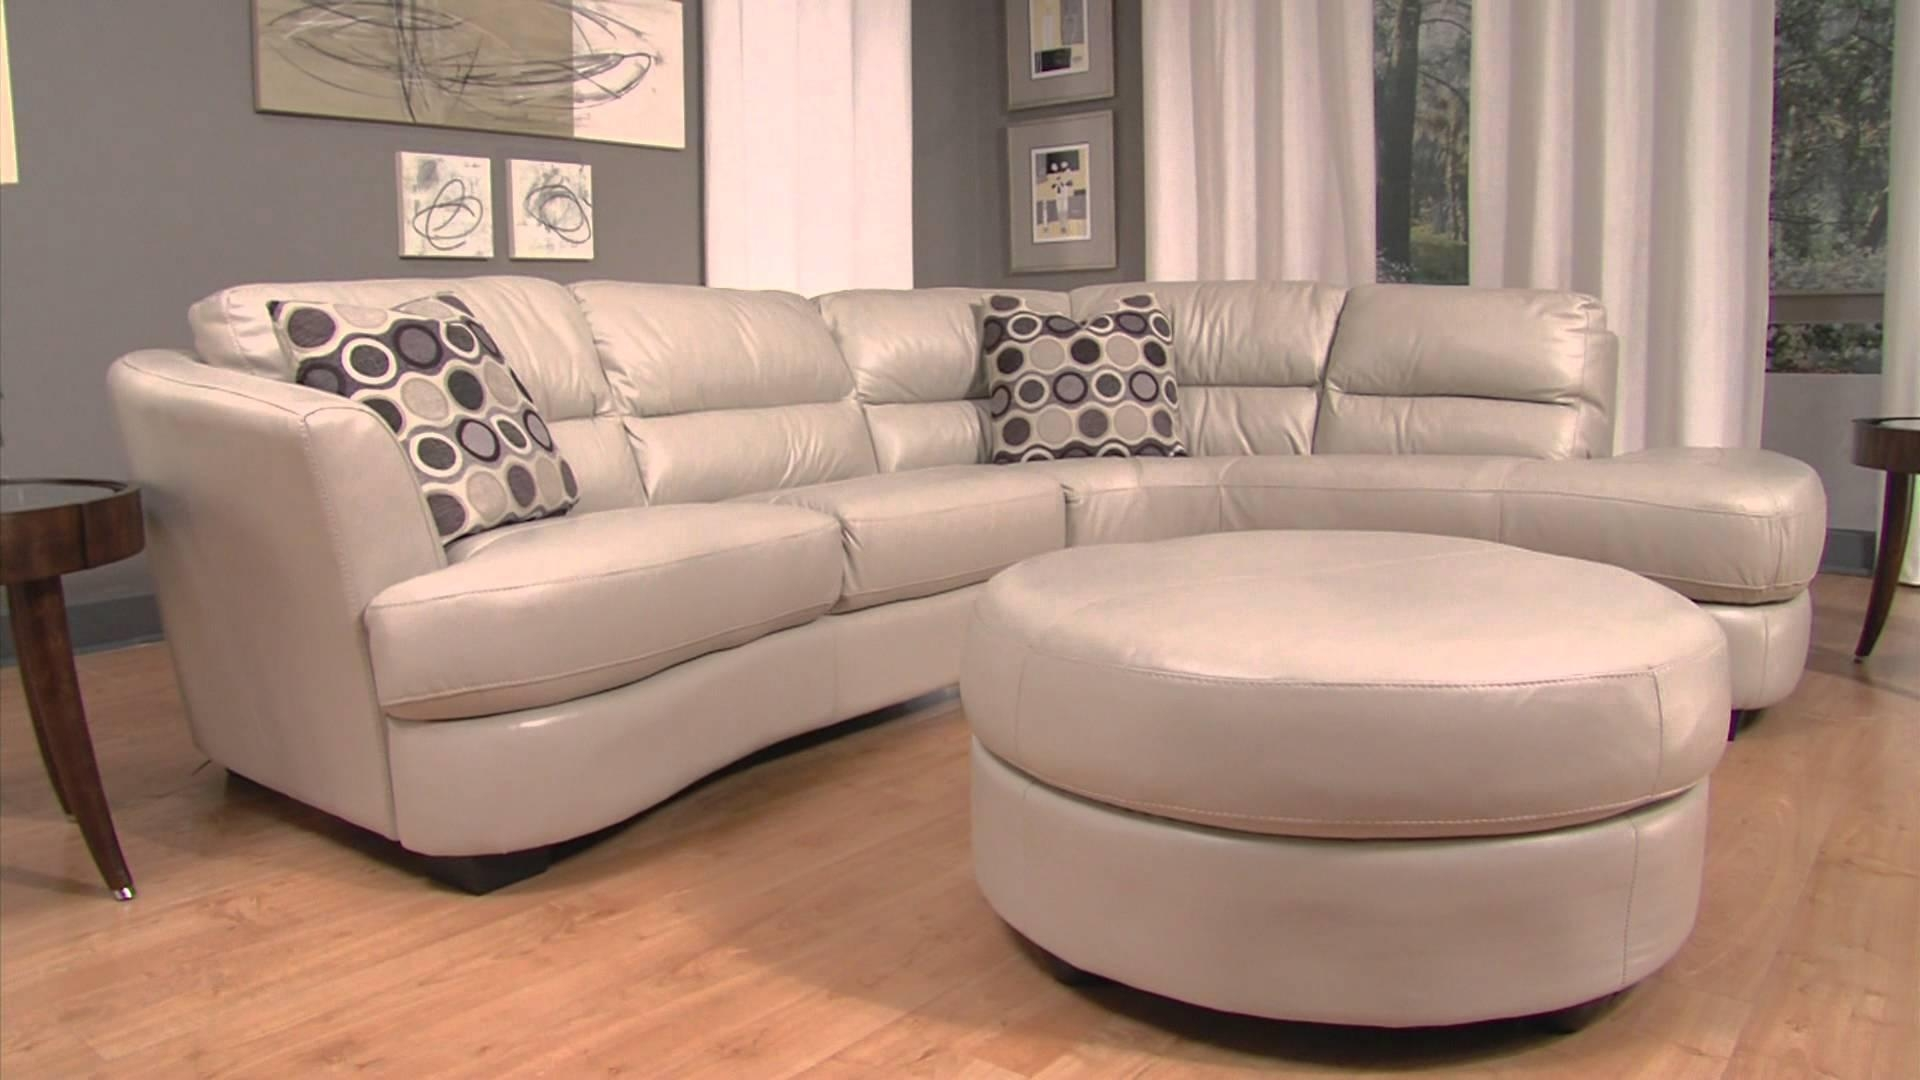 Berkline Andlynn Sofa Set Costco 3 Berkline Andlynn Sofa Set Throughout Berkline Leather Sofas (Image 1 of 20)